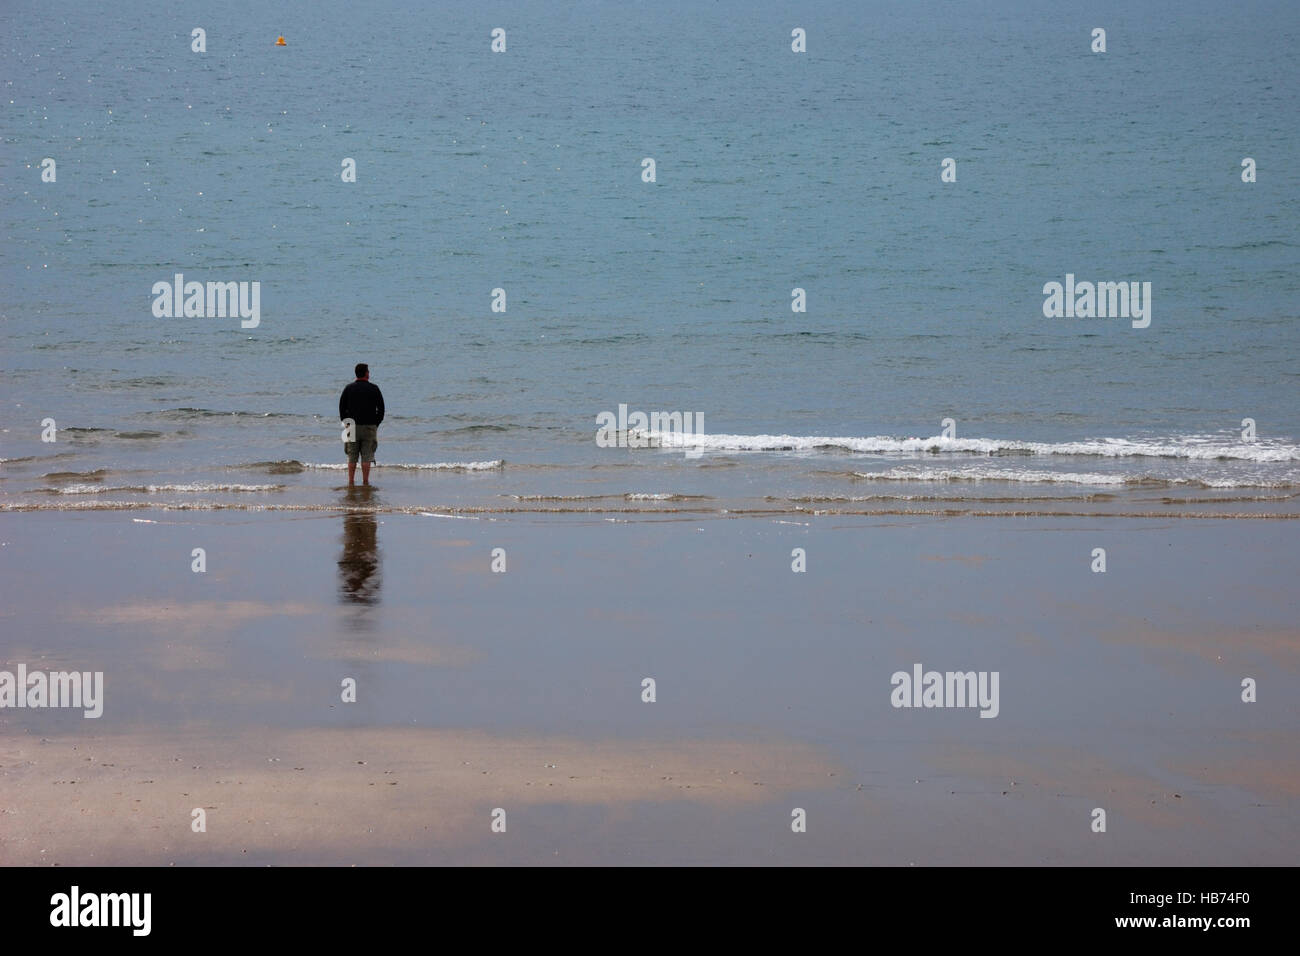 Solitary man wearing shorts standing on the edge of a beach looking out to seaStock Photo